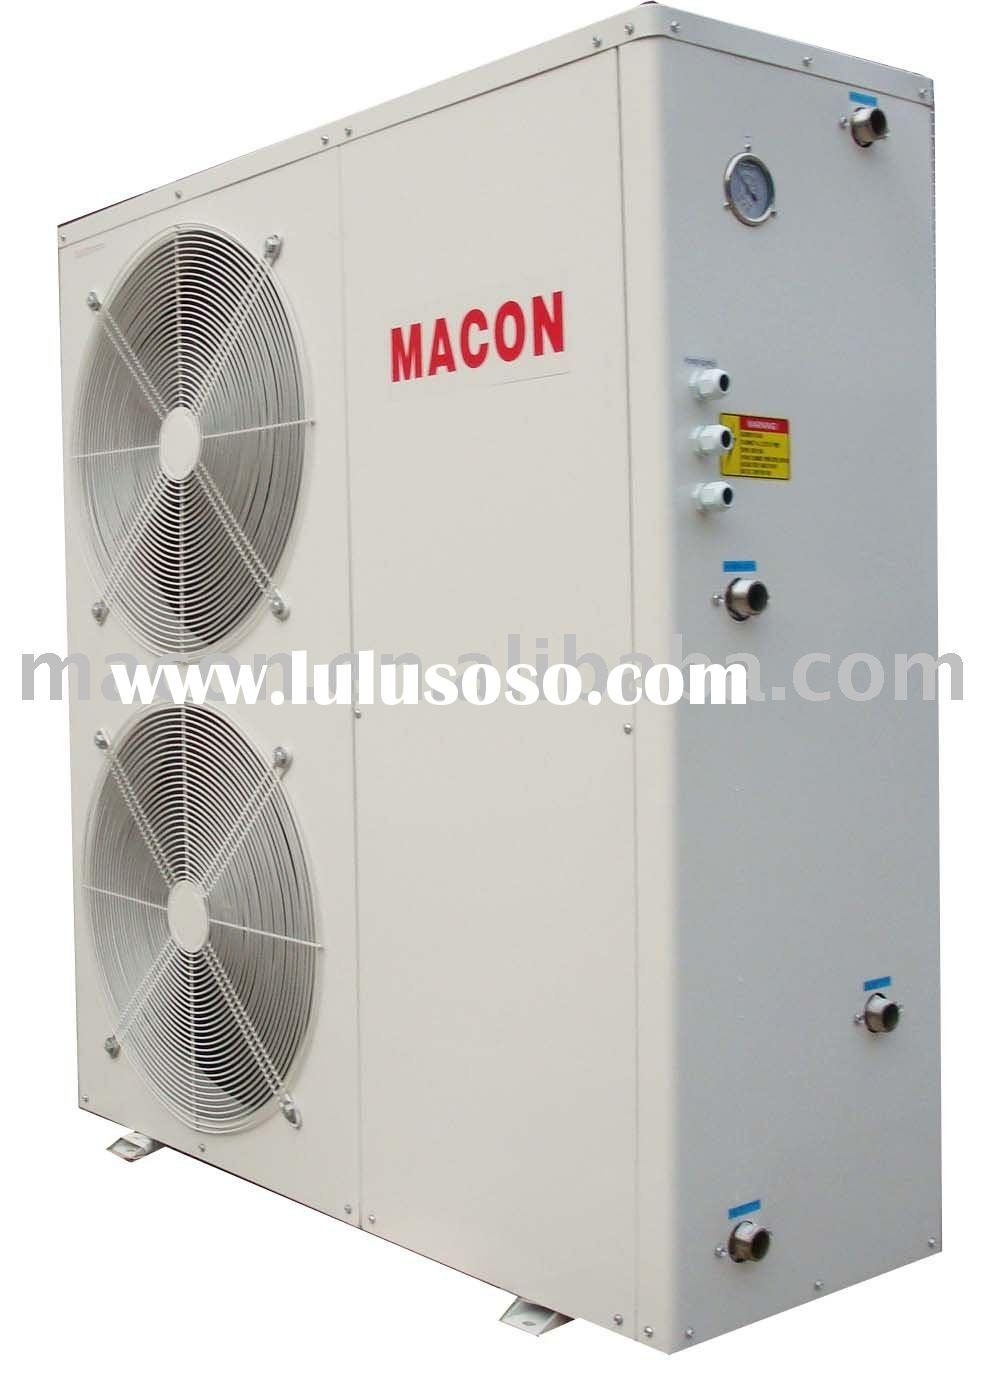 Multi-function heat pump air conditioner and floor heating